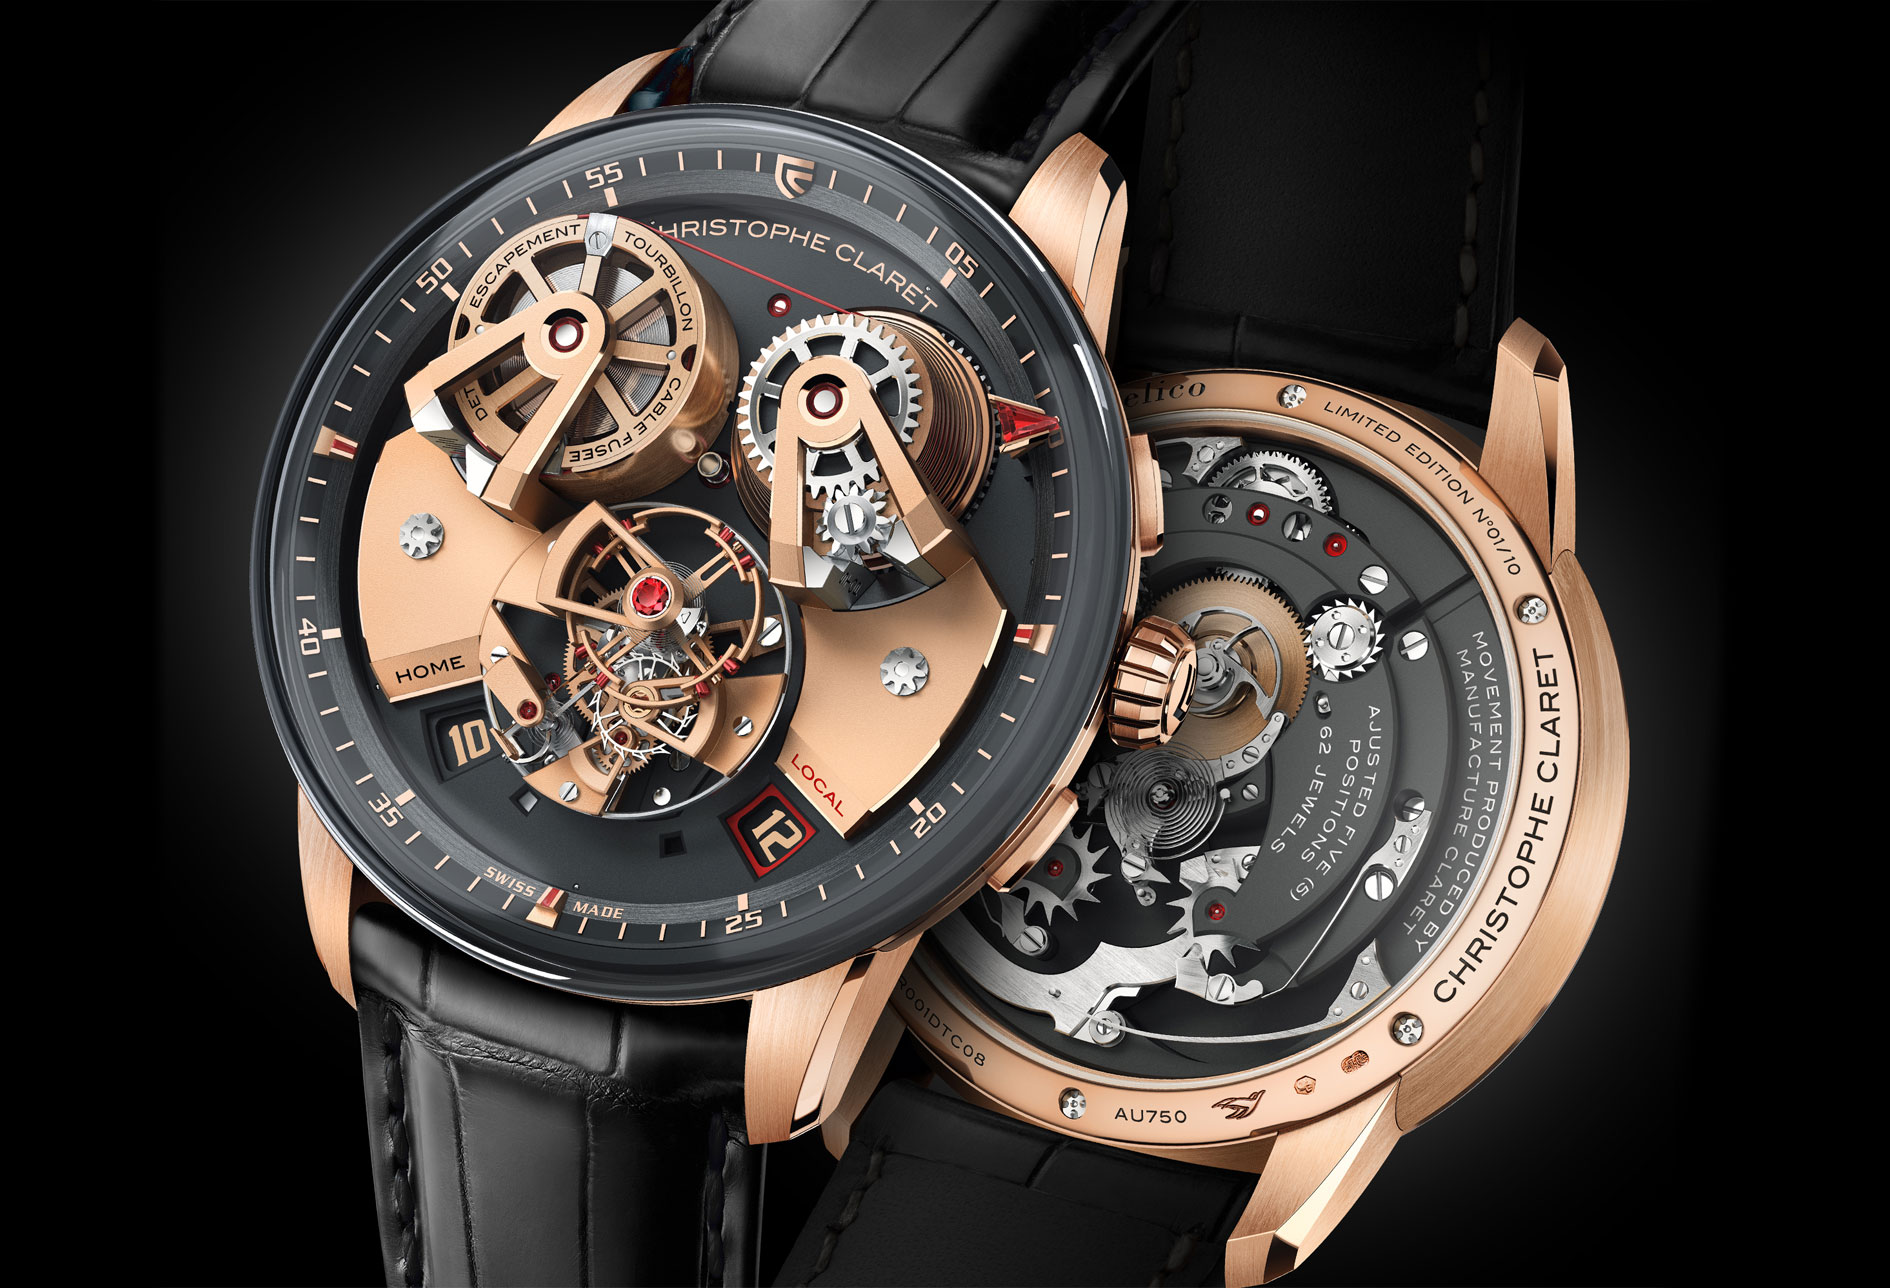 The Christophe Claret Angelico